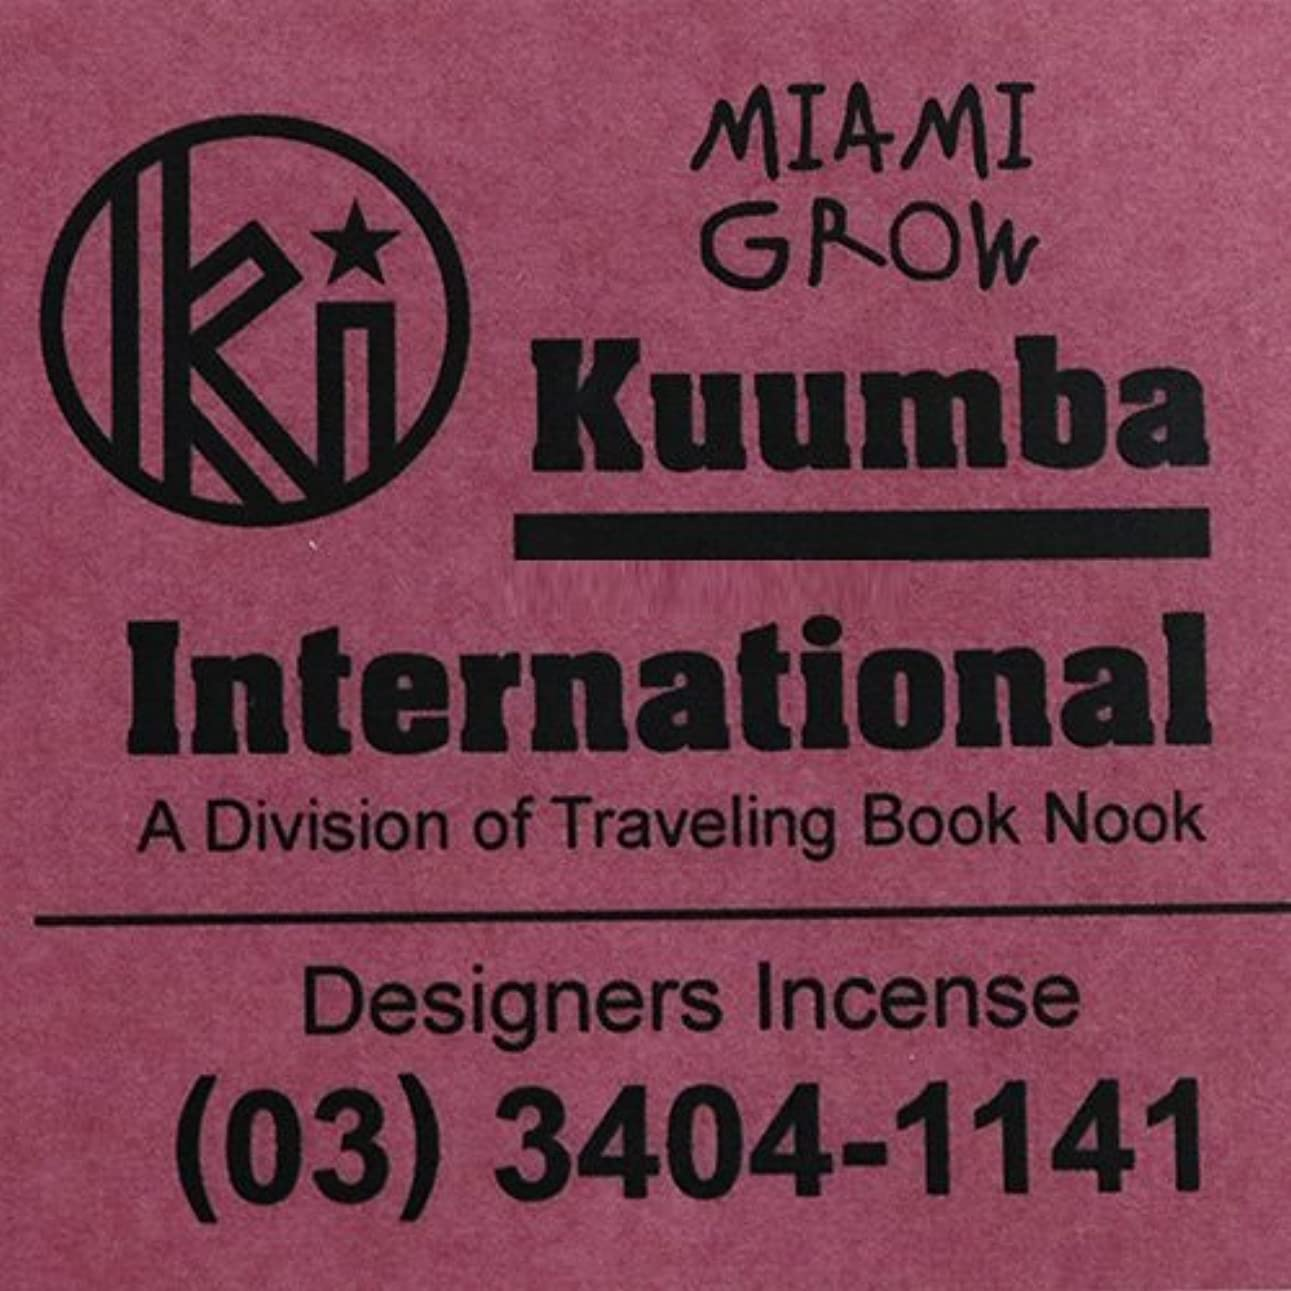 (クンバ) KUUMBA『incense』(MIAMI GROW) (Regular size)